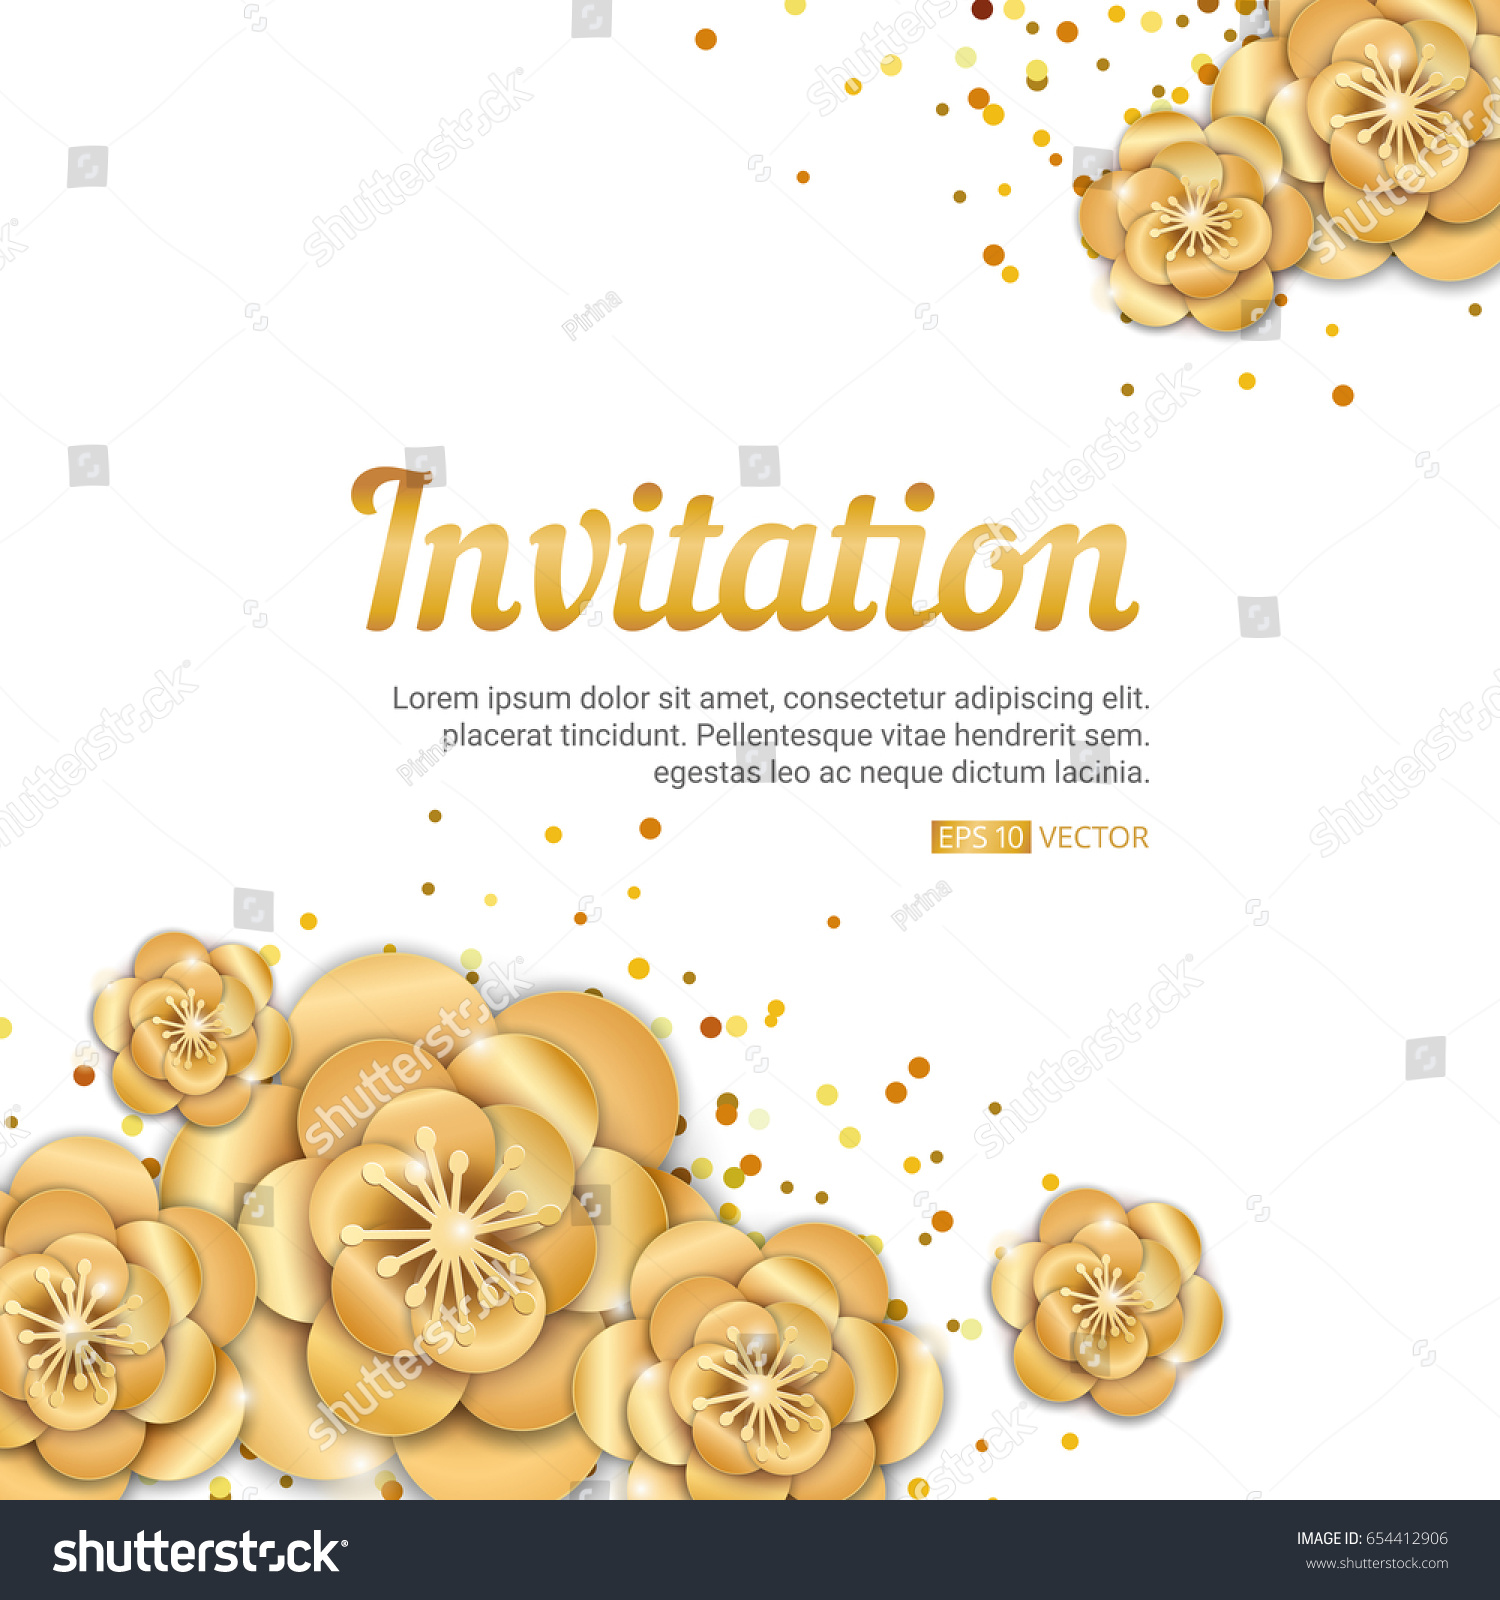 gold lotus flower invitation banner spring のベクター画像素材